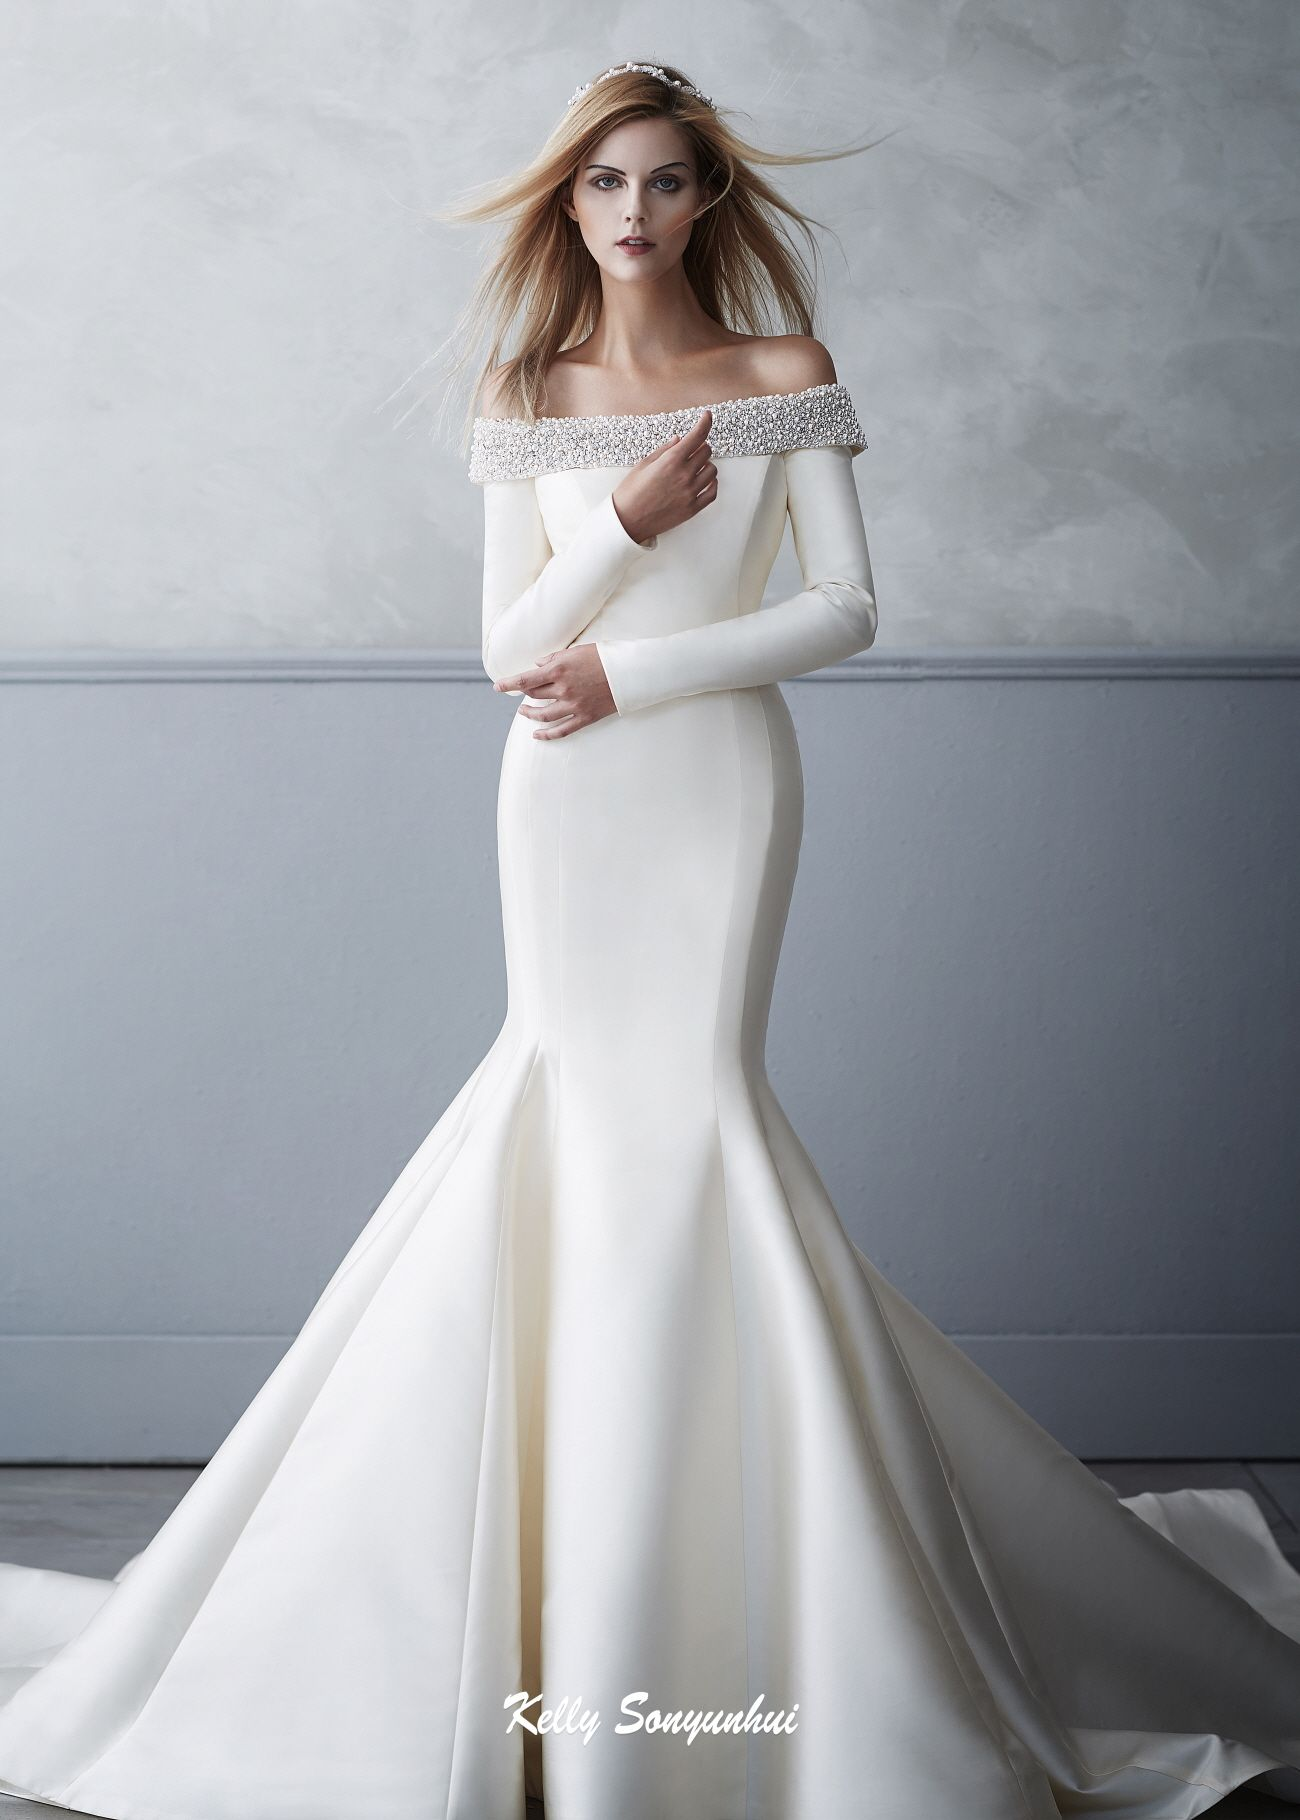 Simple silk wedding dresses country dresses for weddings check